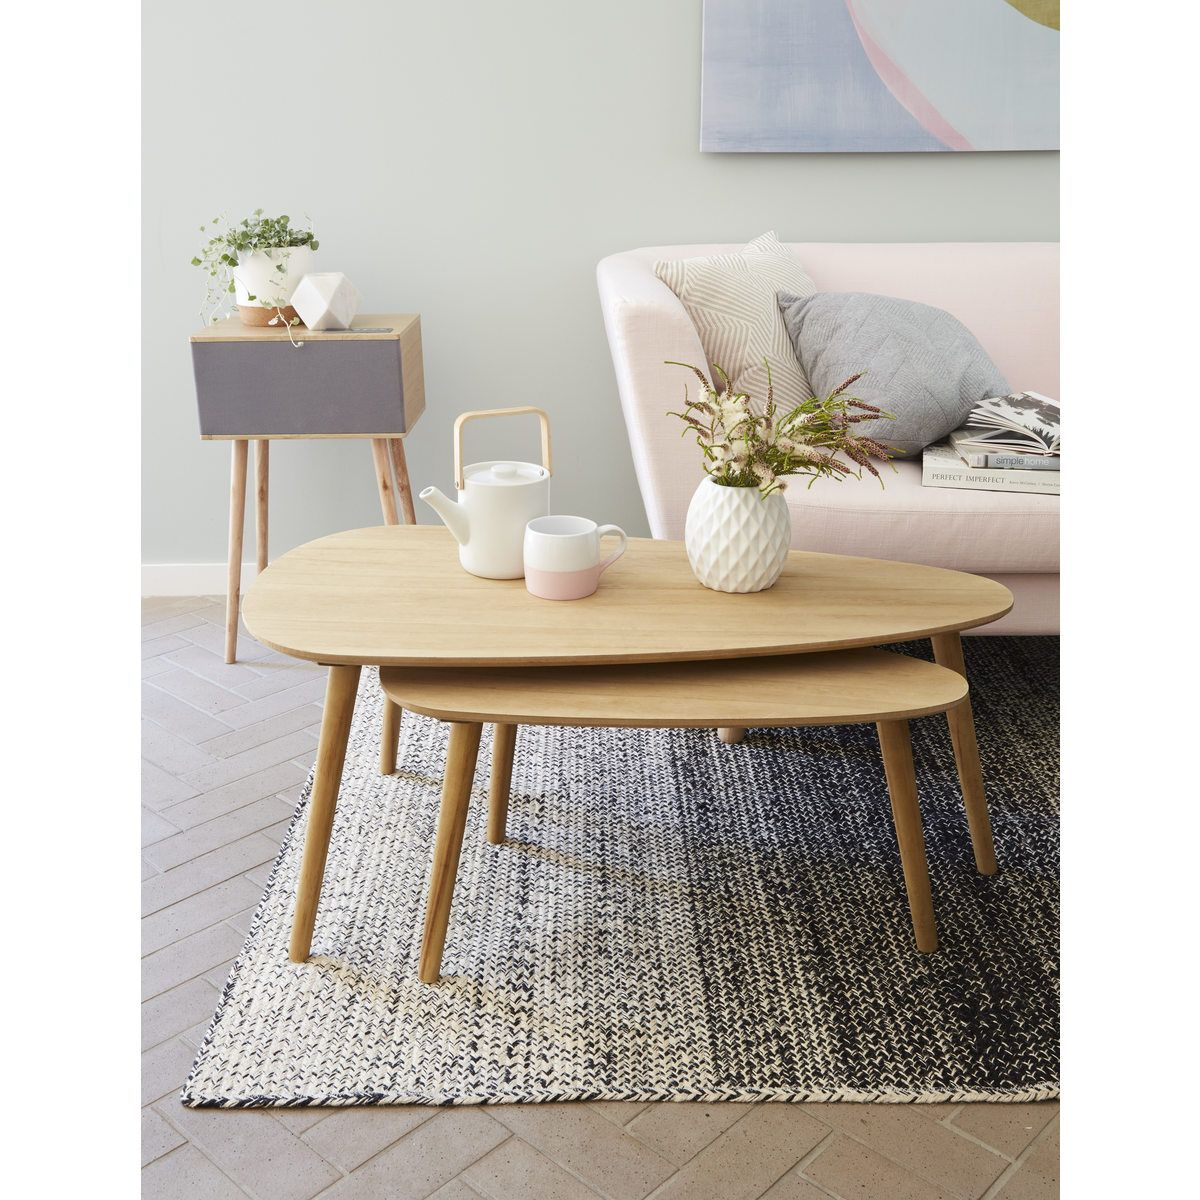 Pin By Linda Crook On Living Room Coffee Table Kmart Coffee Table Coffee Table Setting Living room table kmart